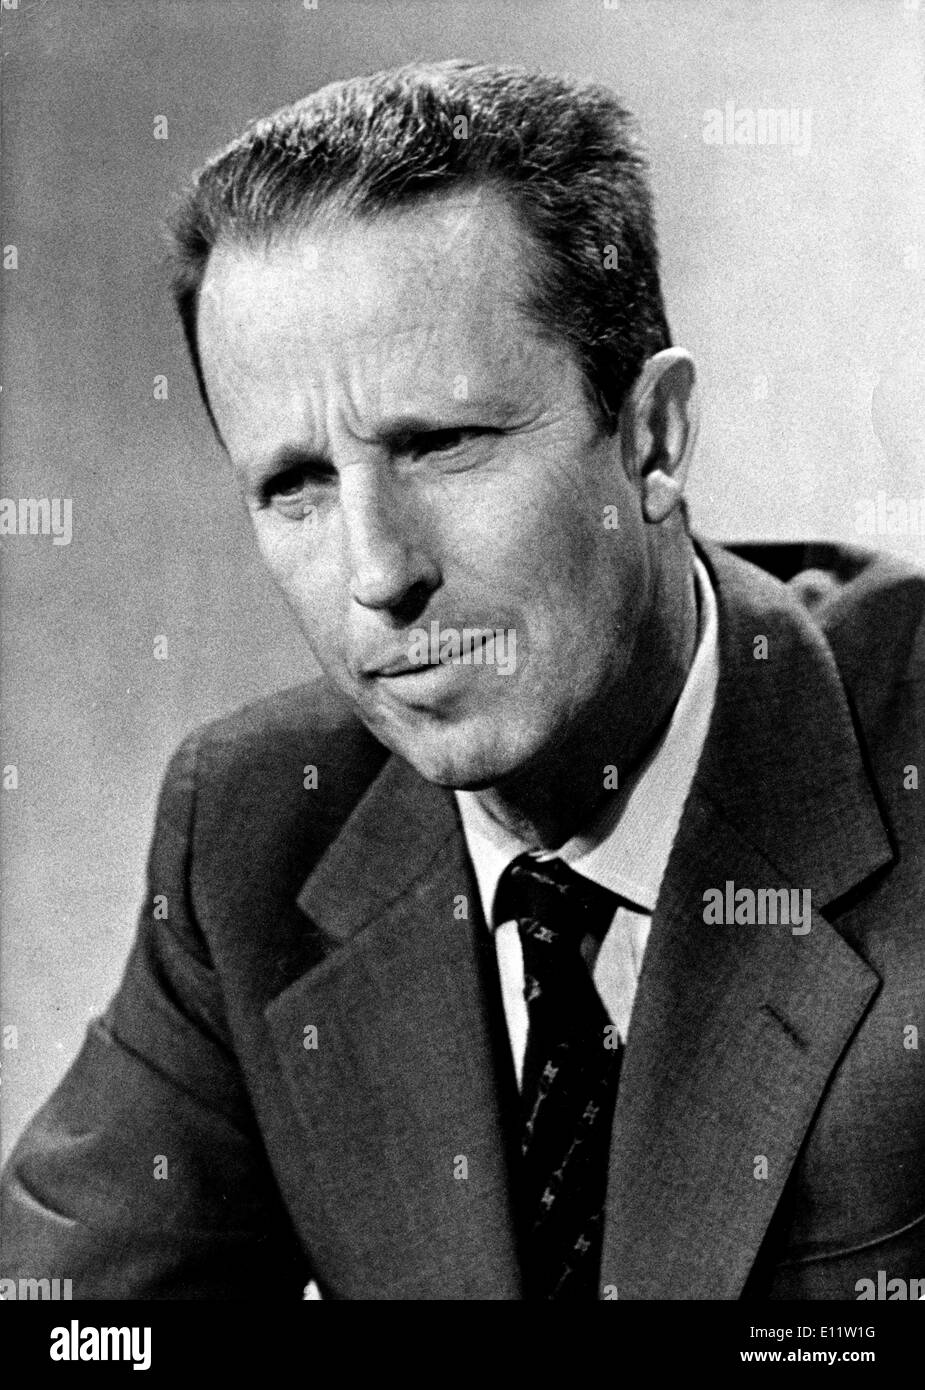 KING BAUDOIN of Belgium reigned from 1951 until his death in 1993. - Stock Image